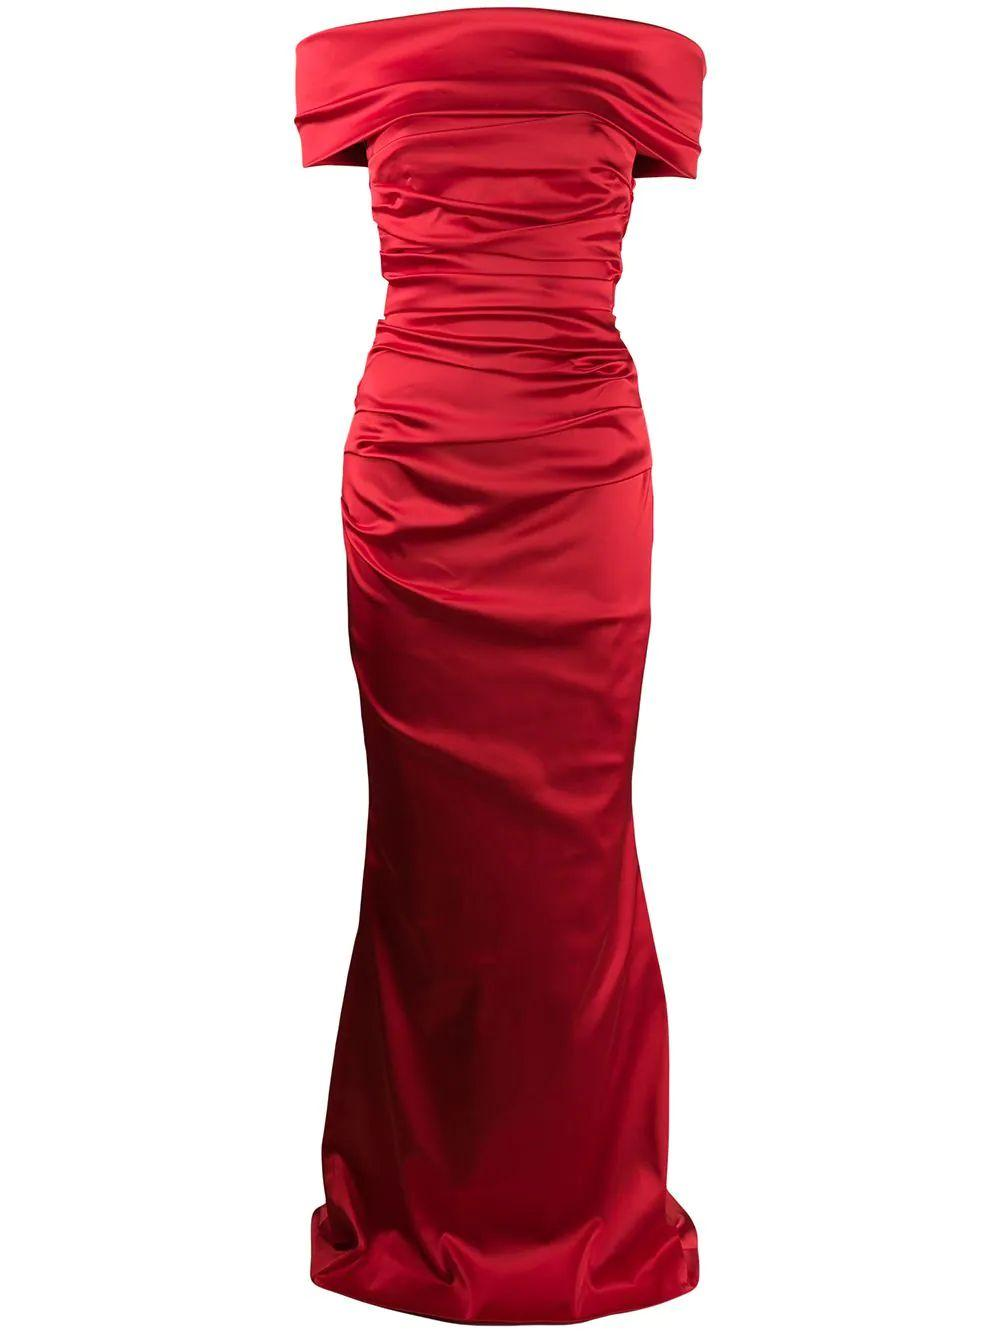 Rosso15 Satin Gown Item # ROSSO15-F21